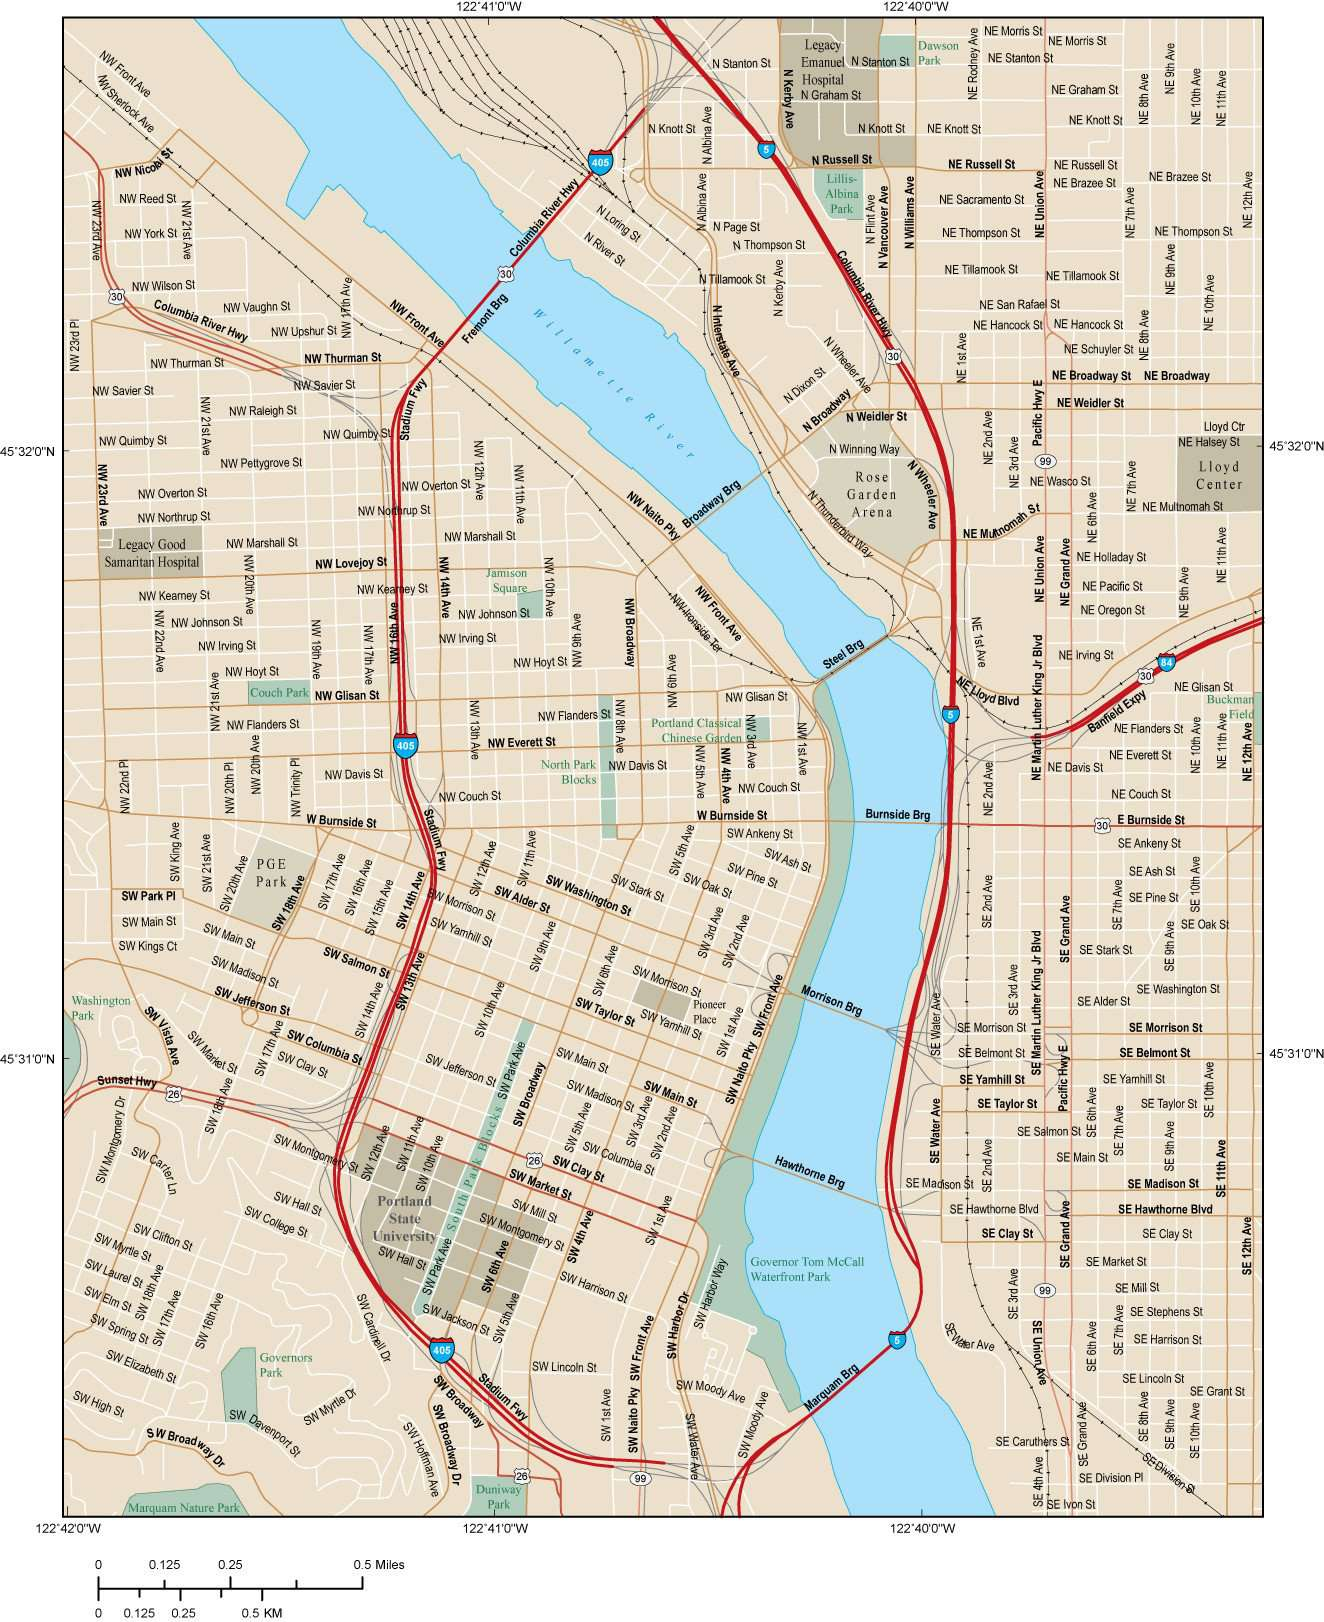 Portland OR Map - City Center - 6 suqare miles - with Local Streets